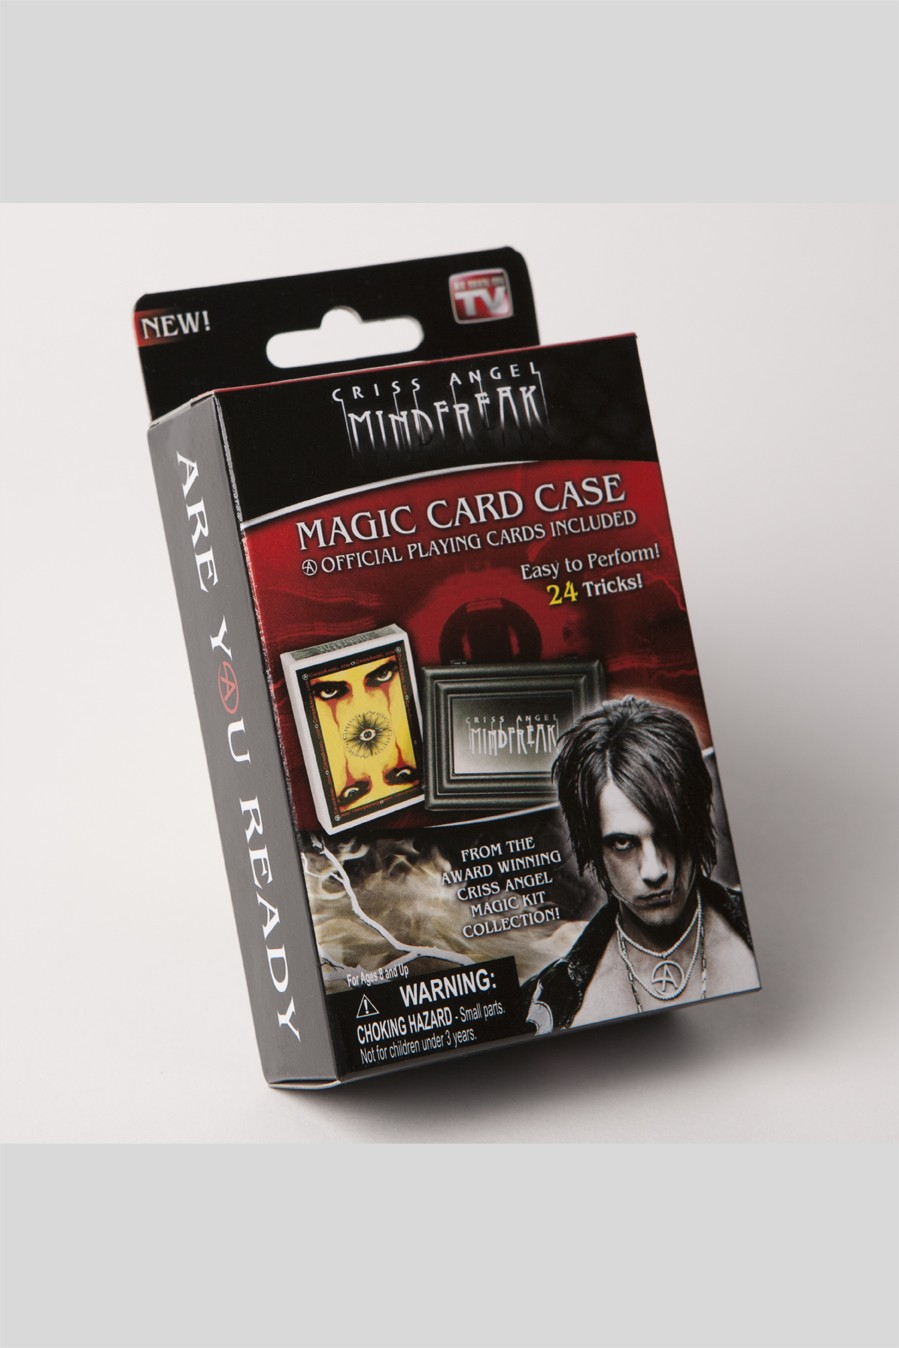 MAGIC MF CRISS ANGEL CARD CASE W/ CARDS